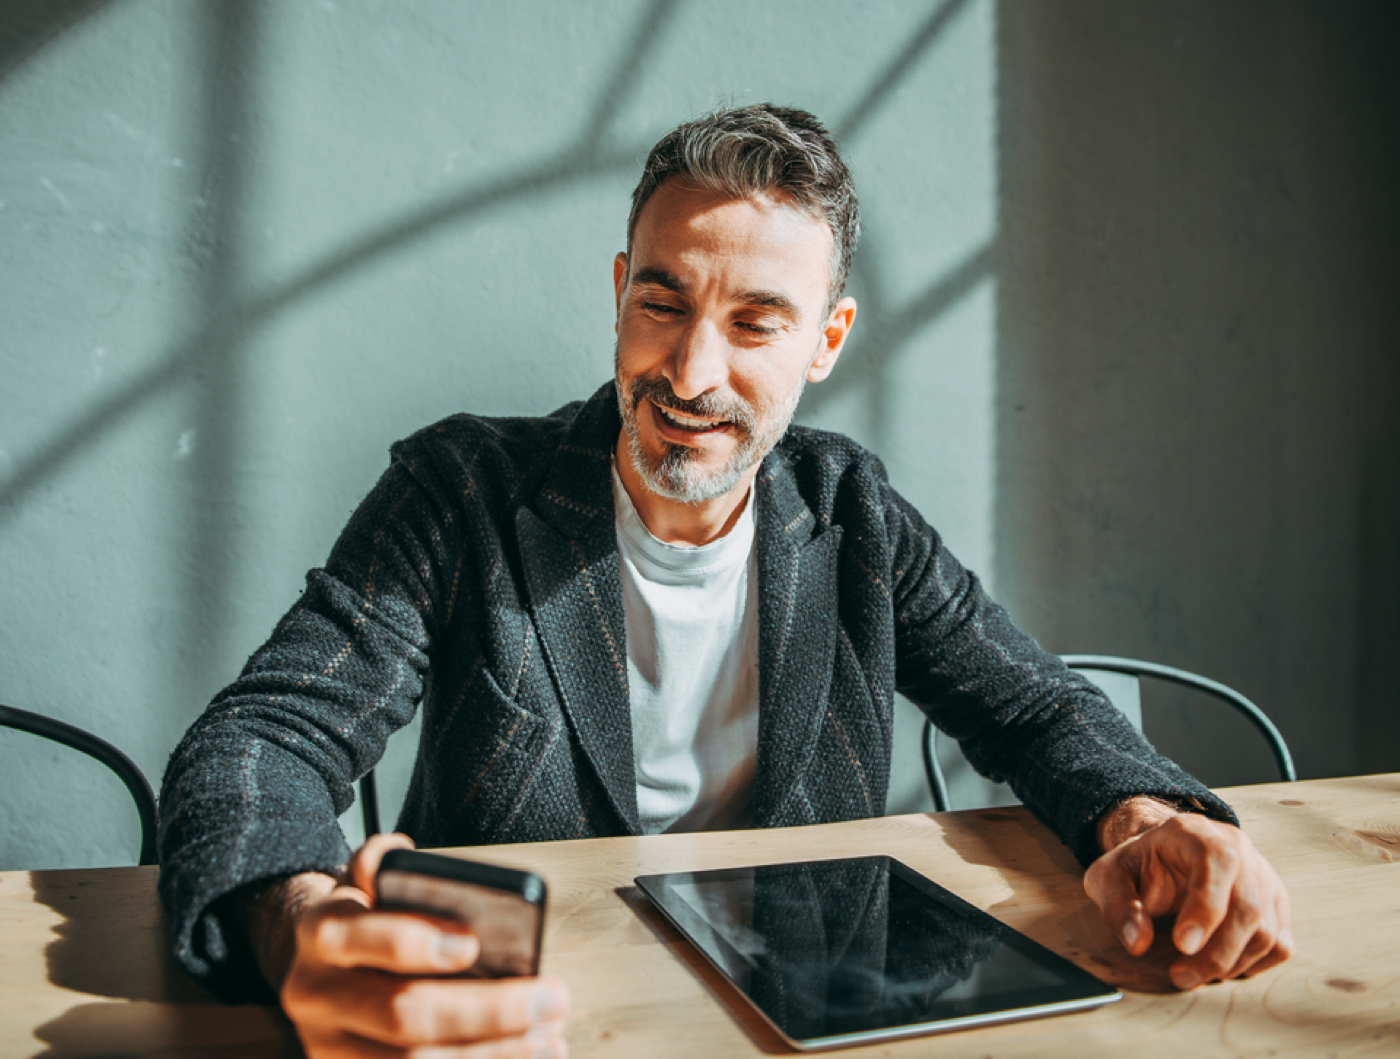 business man sitting at desk looking at his cell phone and tablet